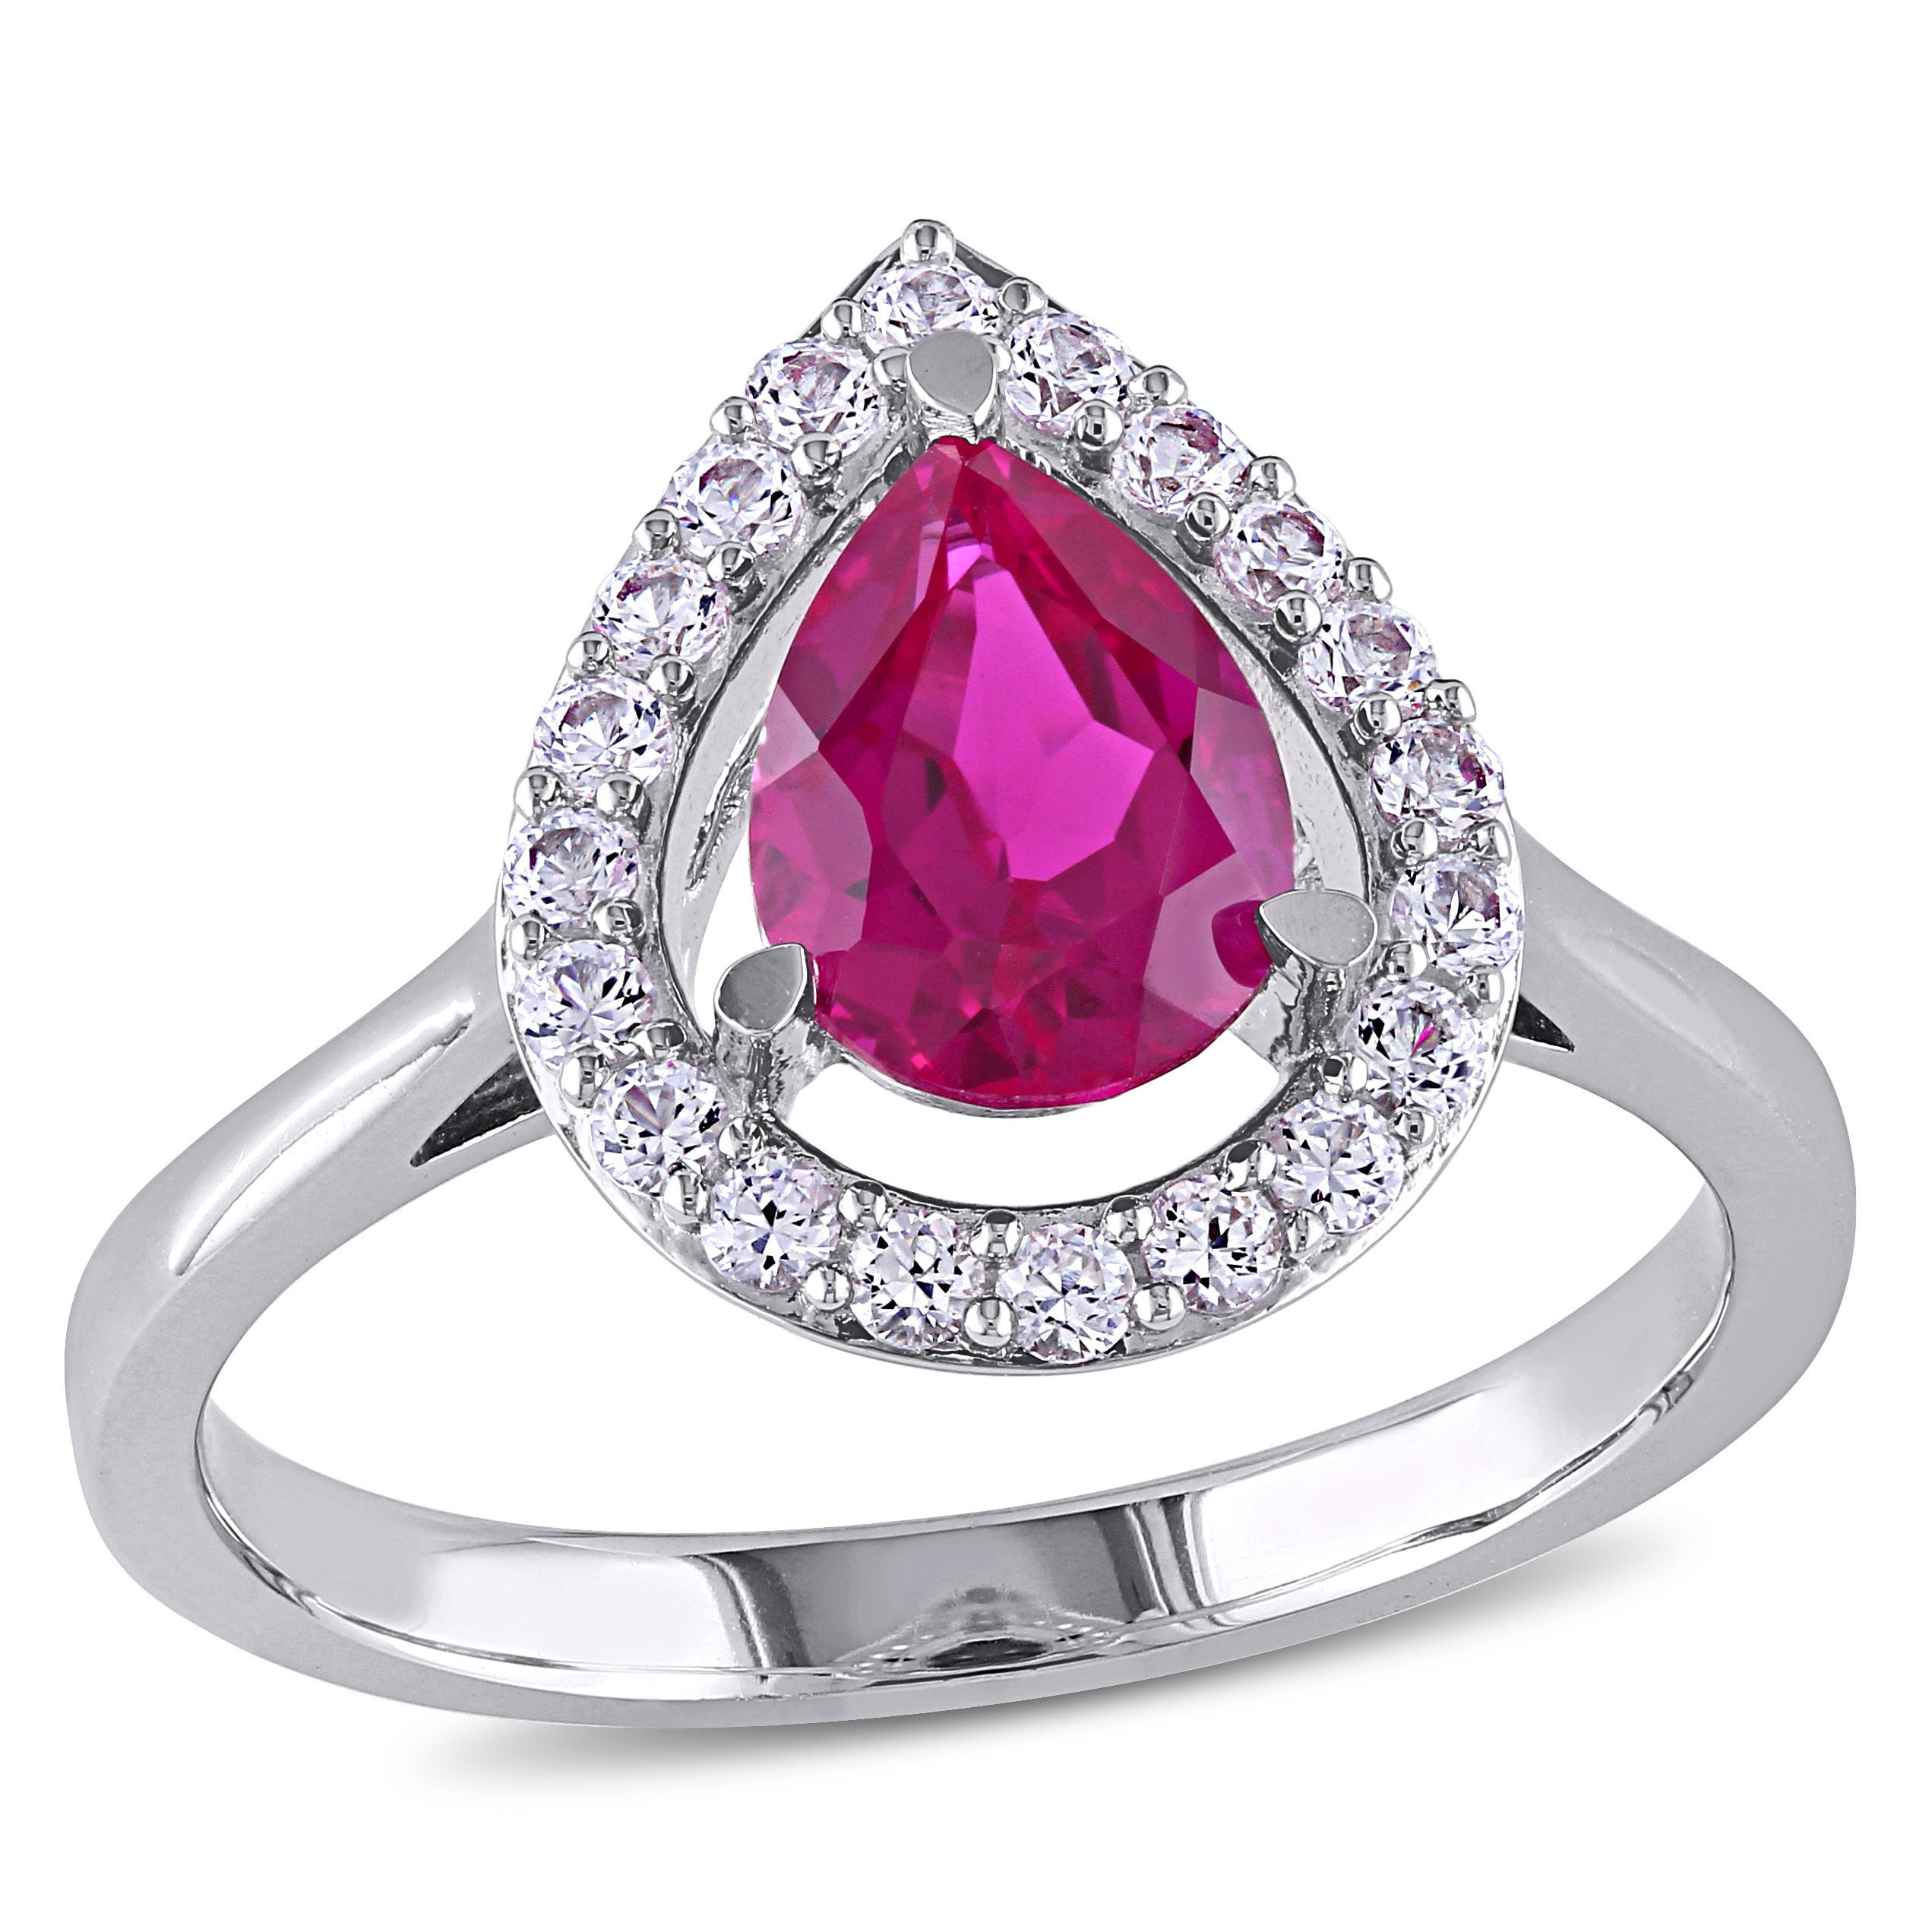 Miadora M by Miadora Sterling Silver Created Ruby and White Sapphire Cocktail Ring